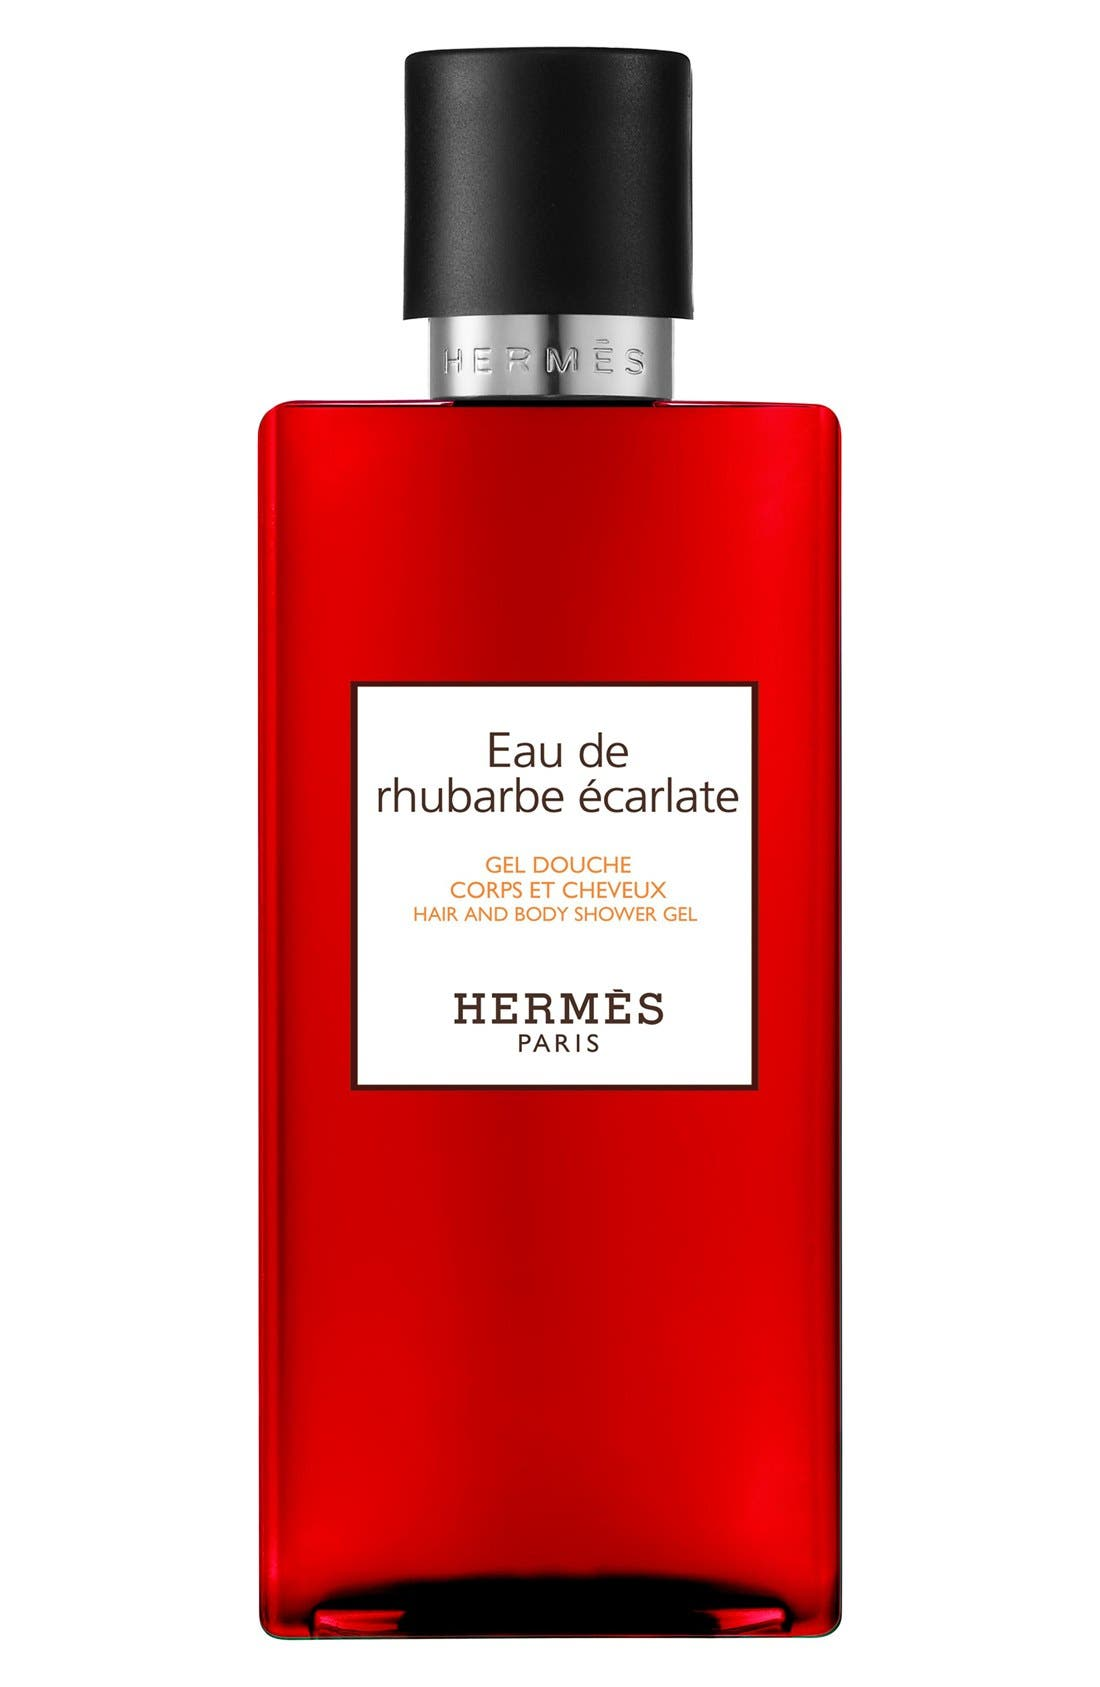 Hermès Eau de Rhubarbe Écarlate - Hair and body shower gel